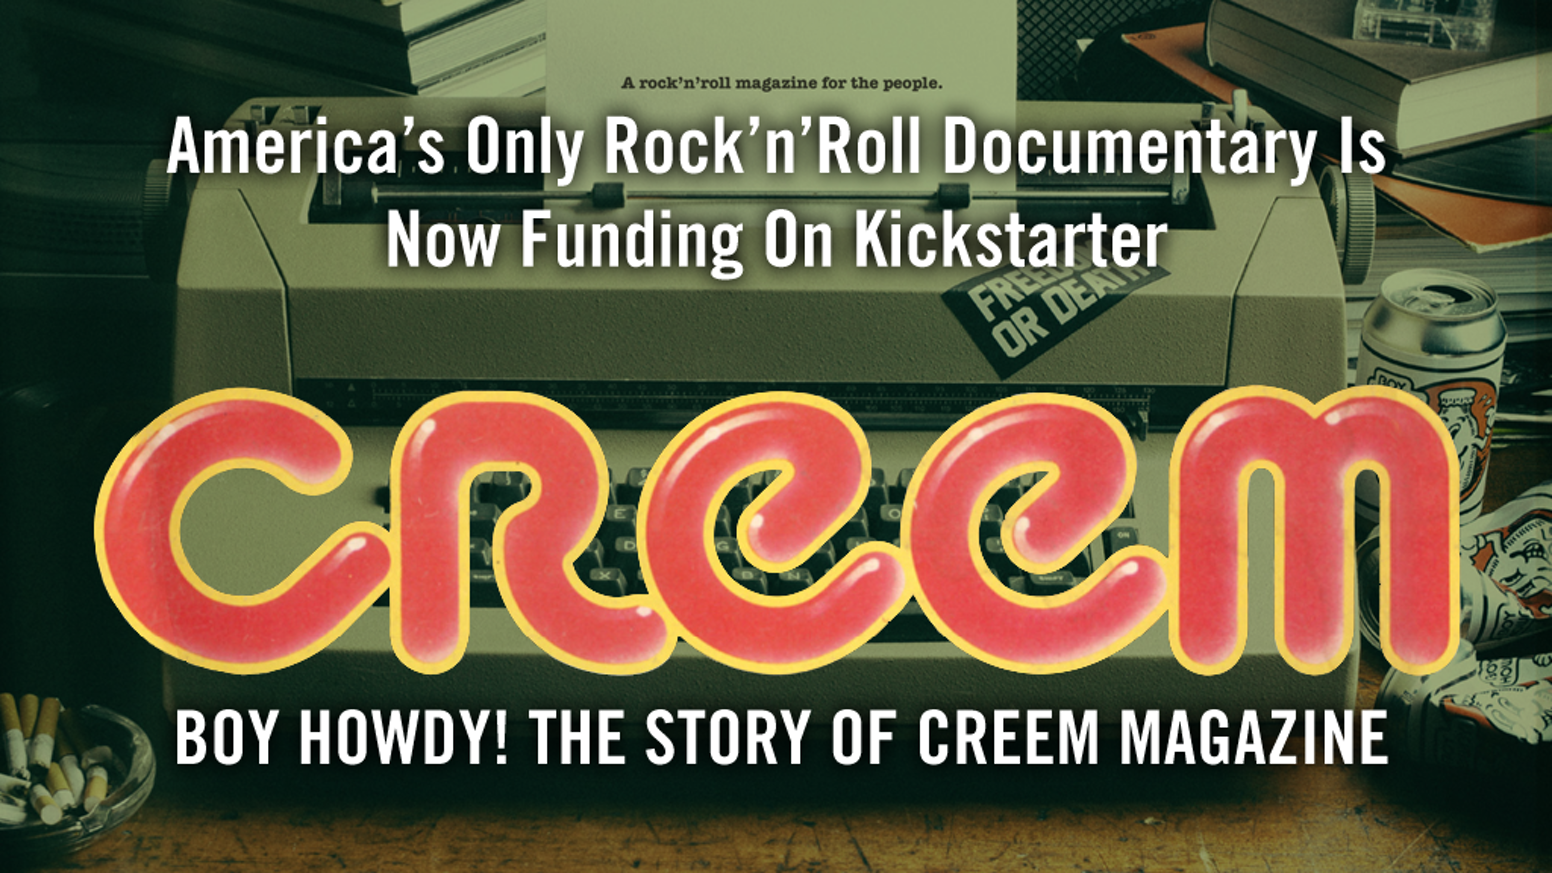 Unfiltered and unapologetic, CREEM remains America's only true rock'n'roll magazine—long after publishing its final issue.